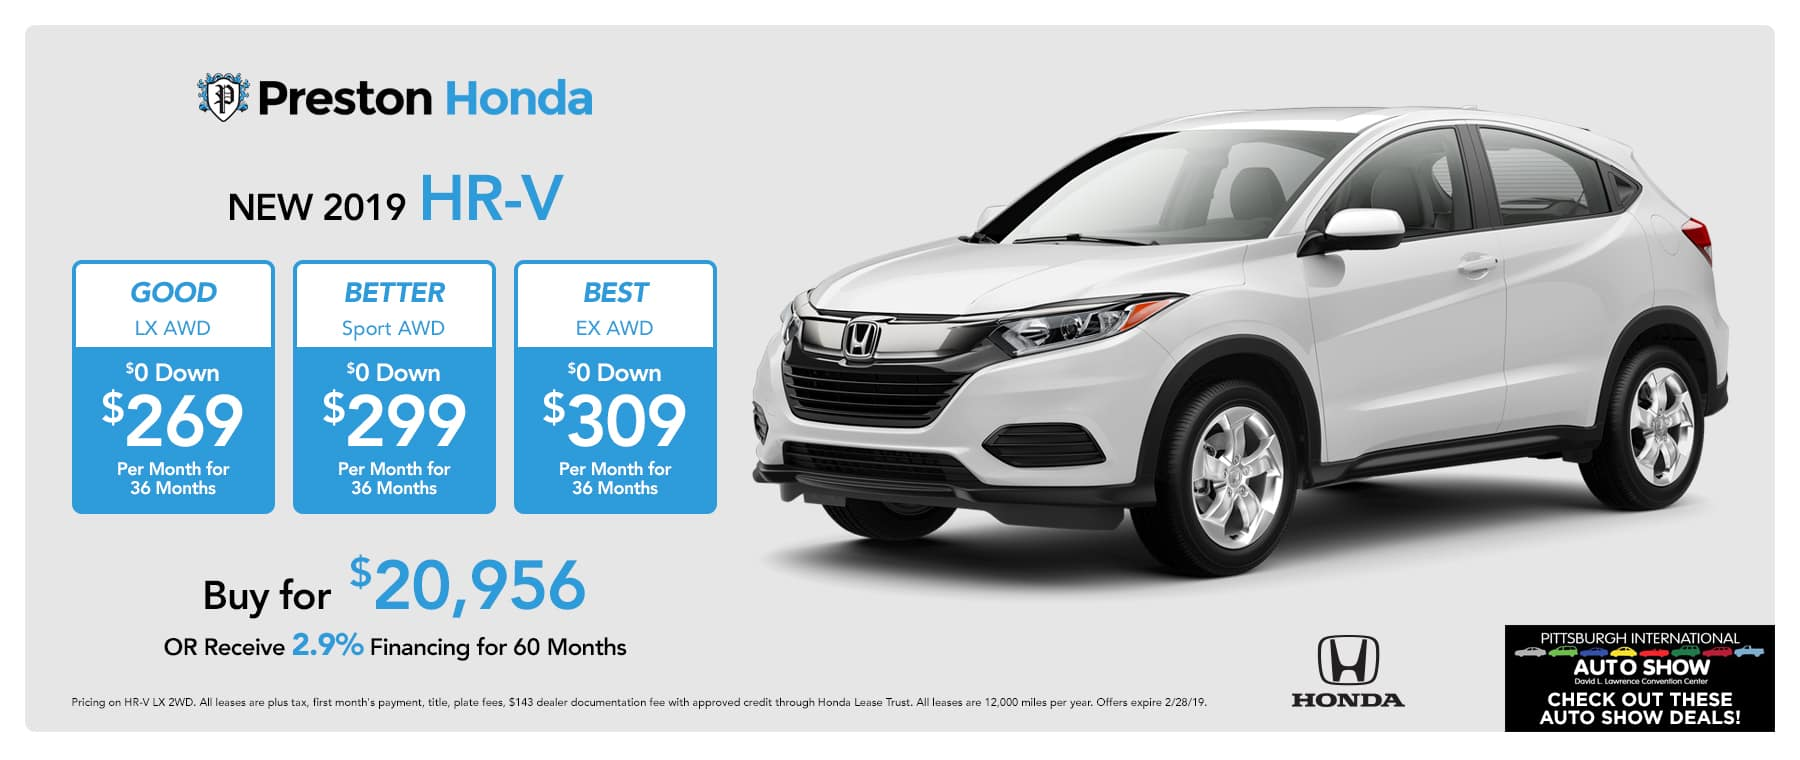 New And Used Cars Preston Honda In New Castle Pa New Used Cars